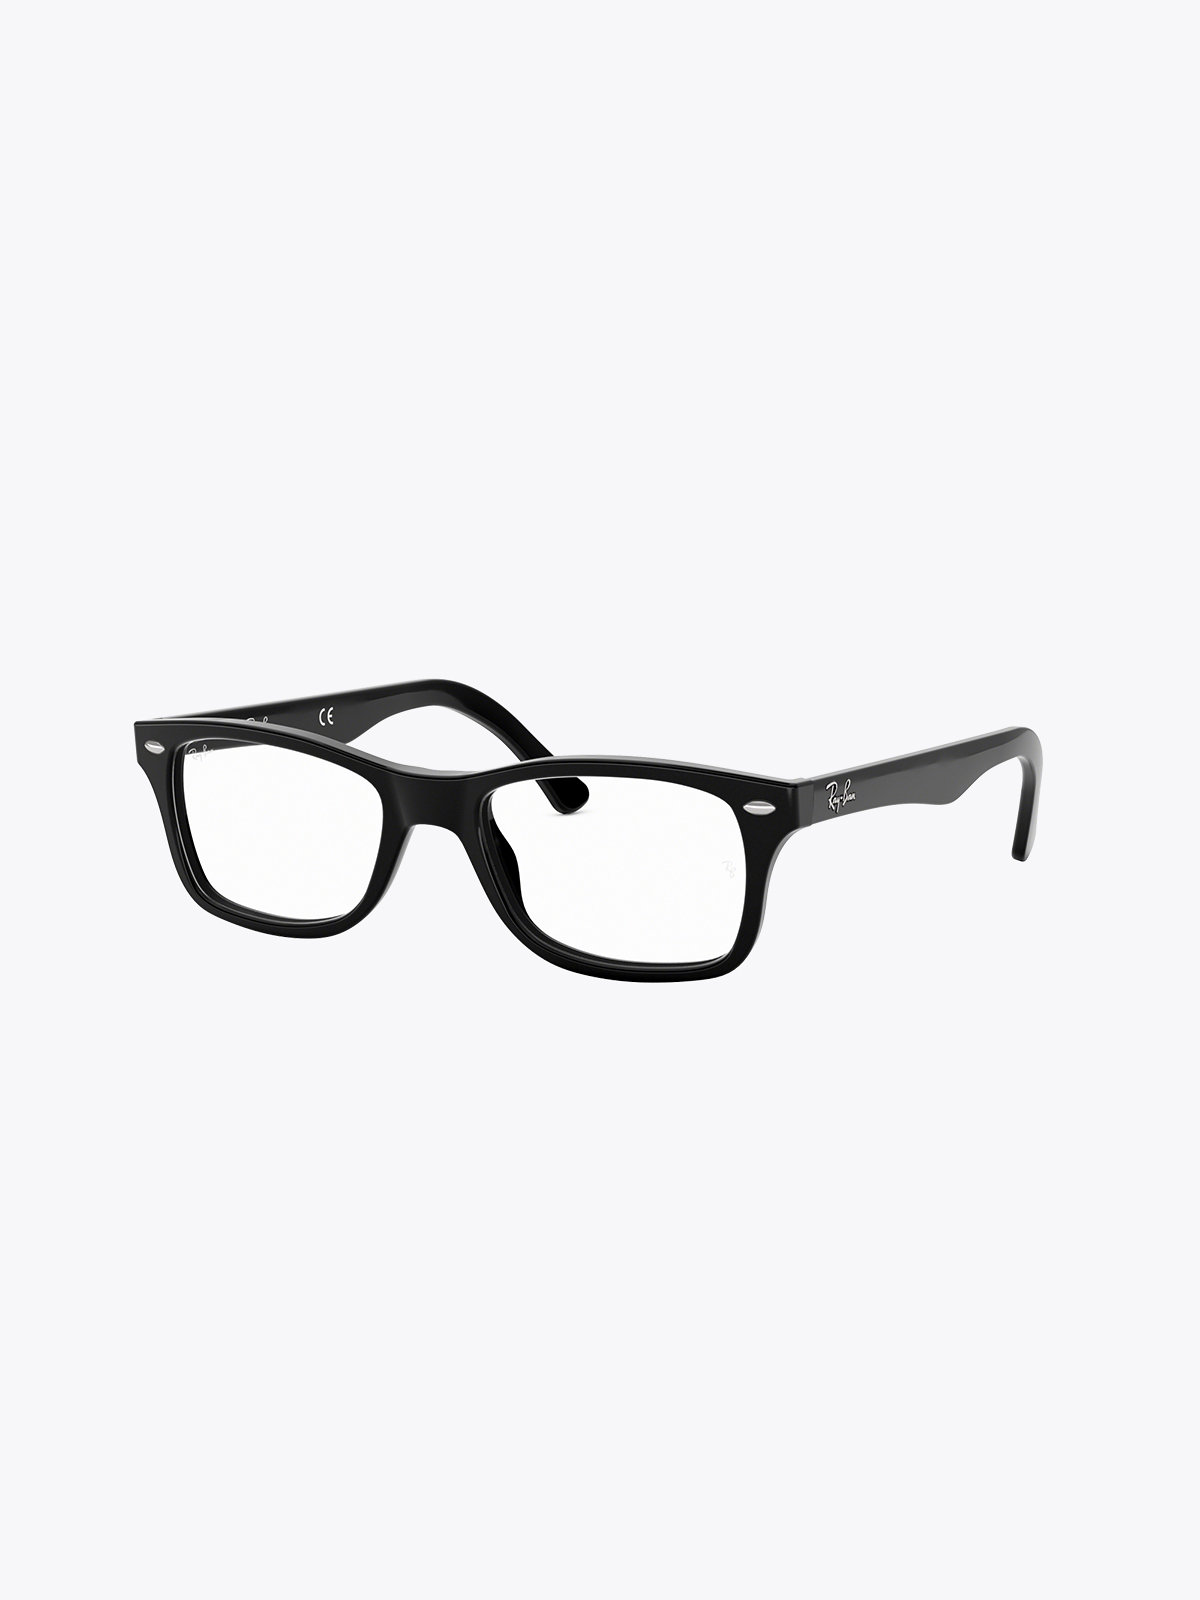 ee69188be477 Ray-Ban RB5228F   Glasses.com®   Free Shipping